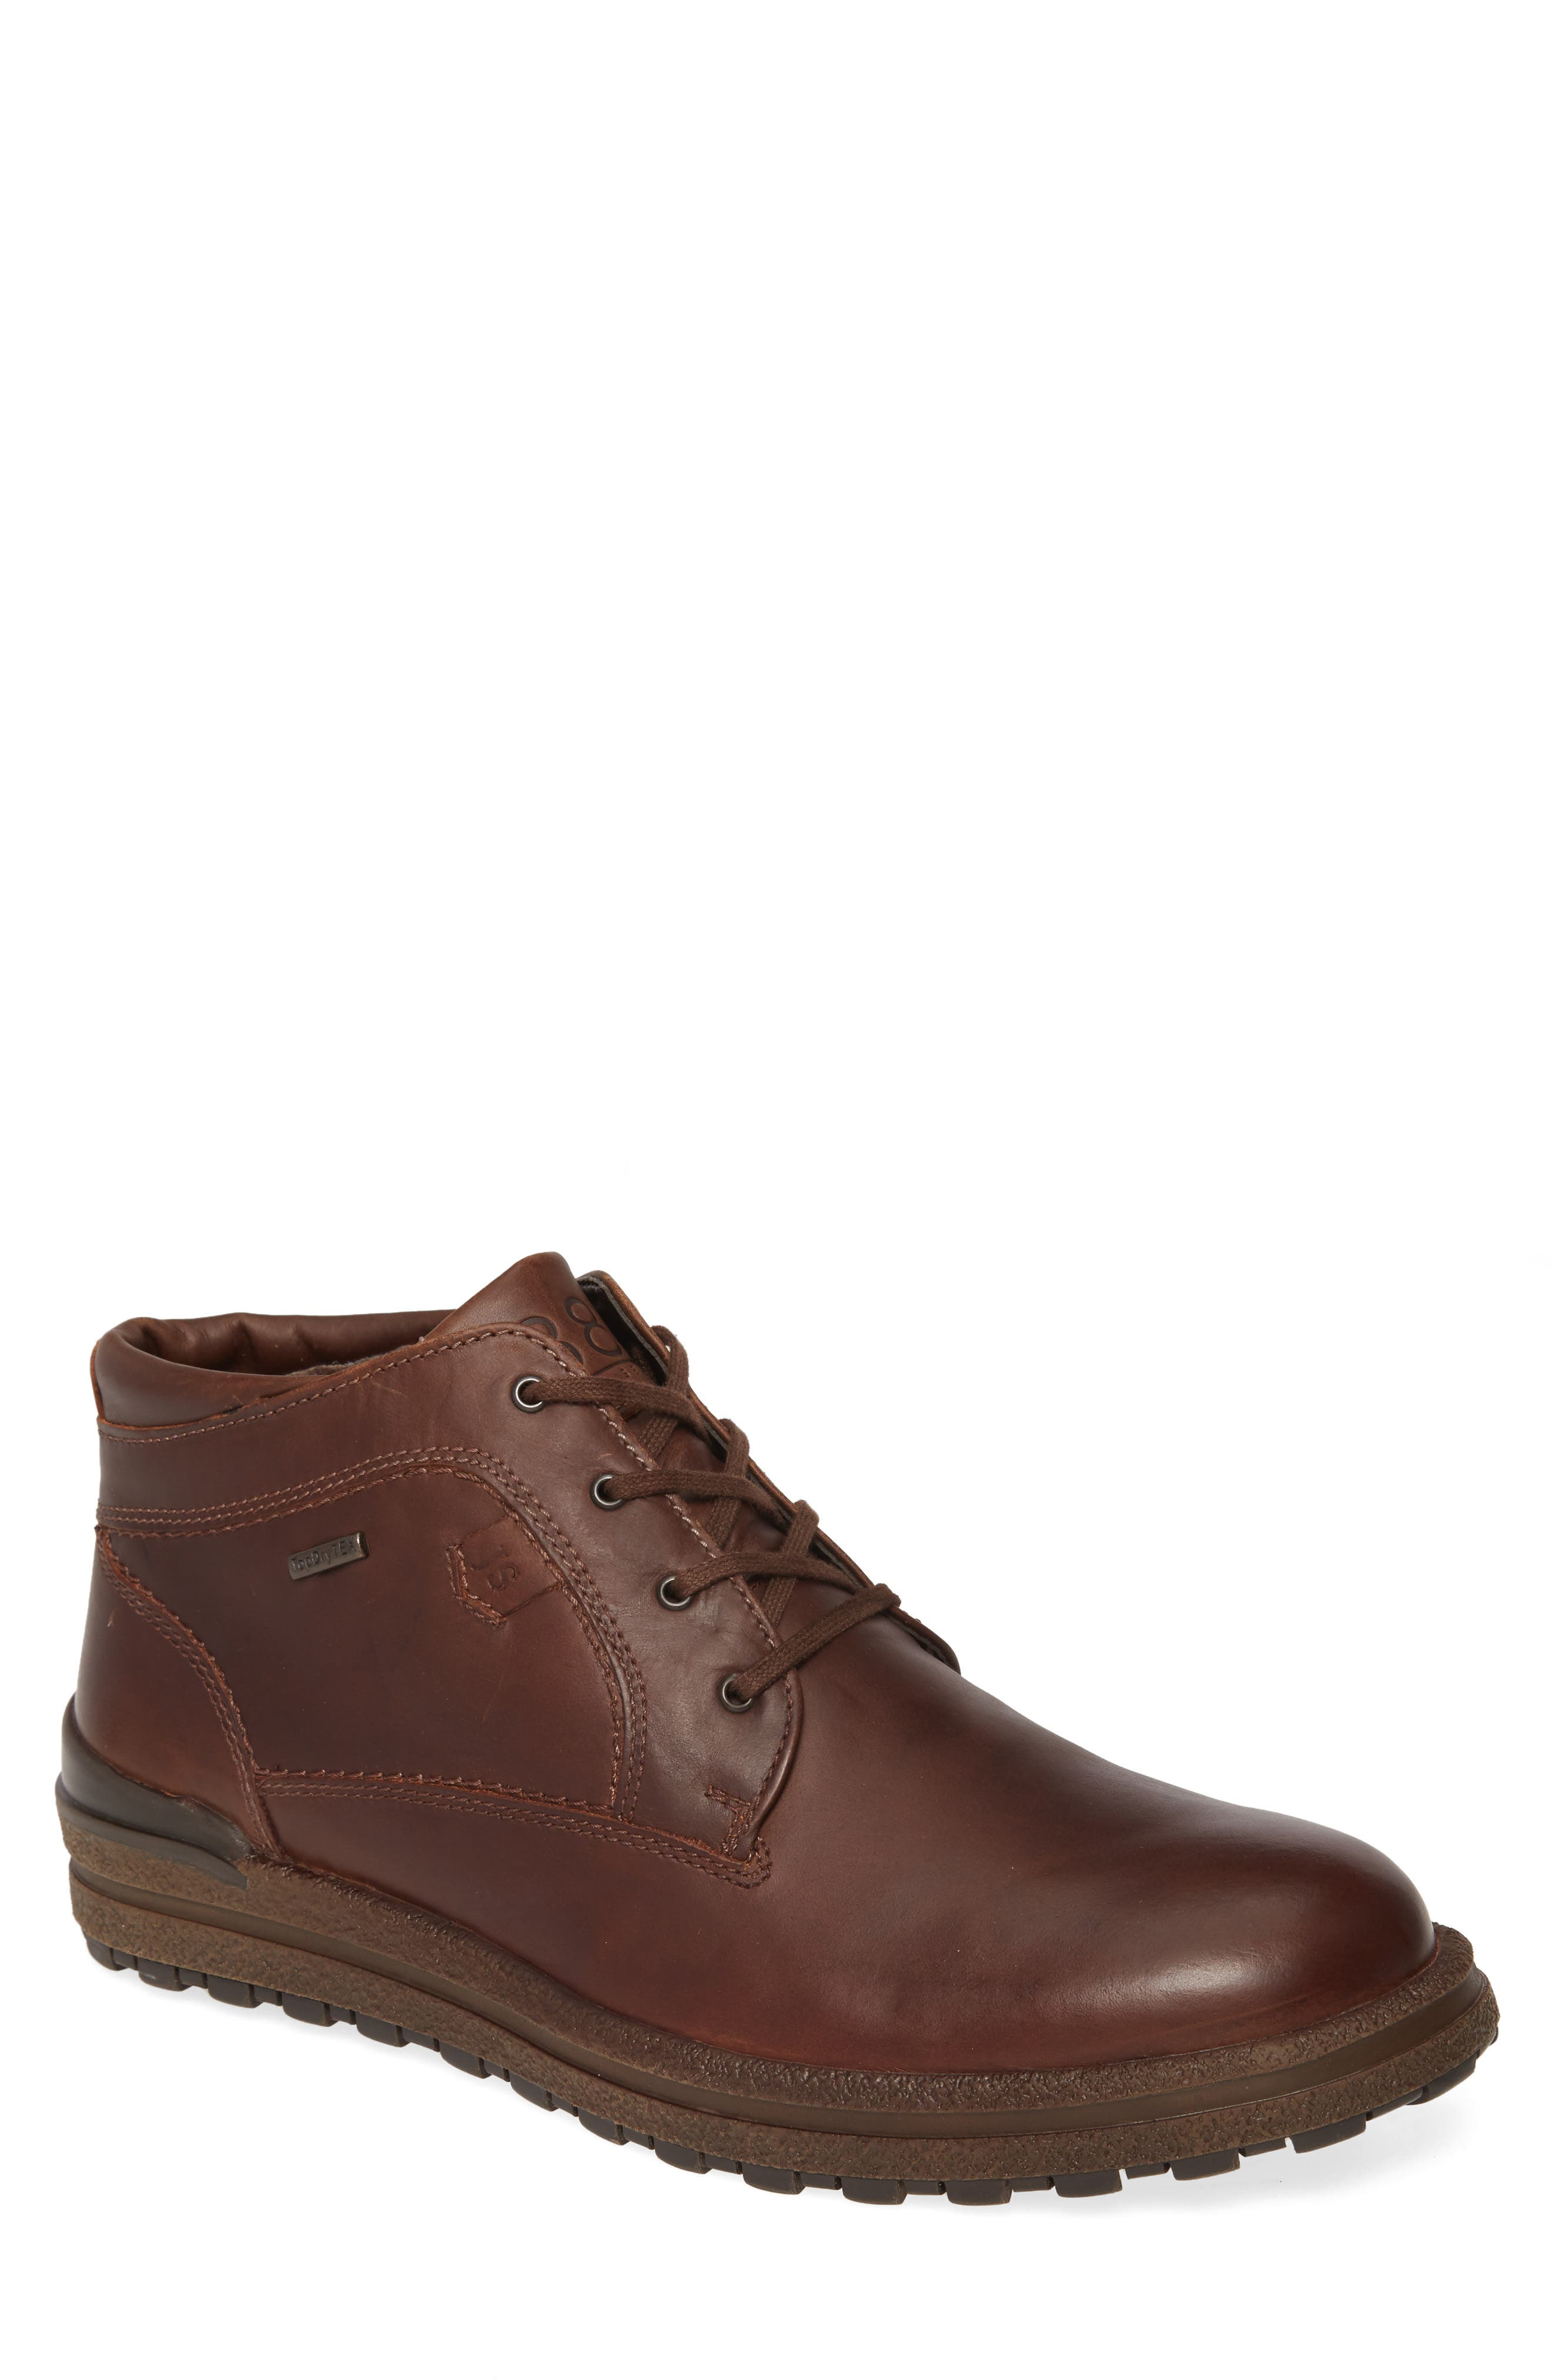 Cushioned arch support and waterproof construction mean all-day comfort in a handsome chukka boot built from fine full-grain leather. Style Name: Josef Seibel Emil 59 Waterproof Chukka Boot (Men). Style Number: 5837304. Available in stores.